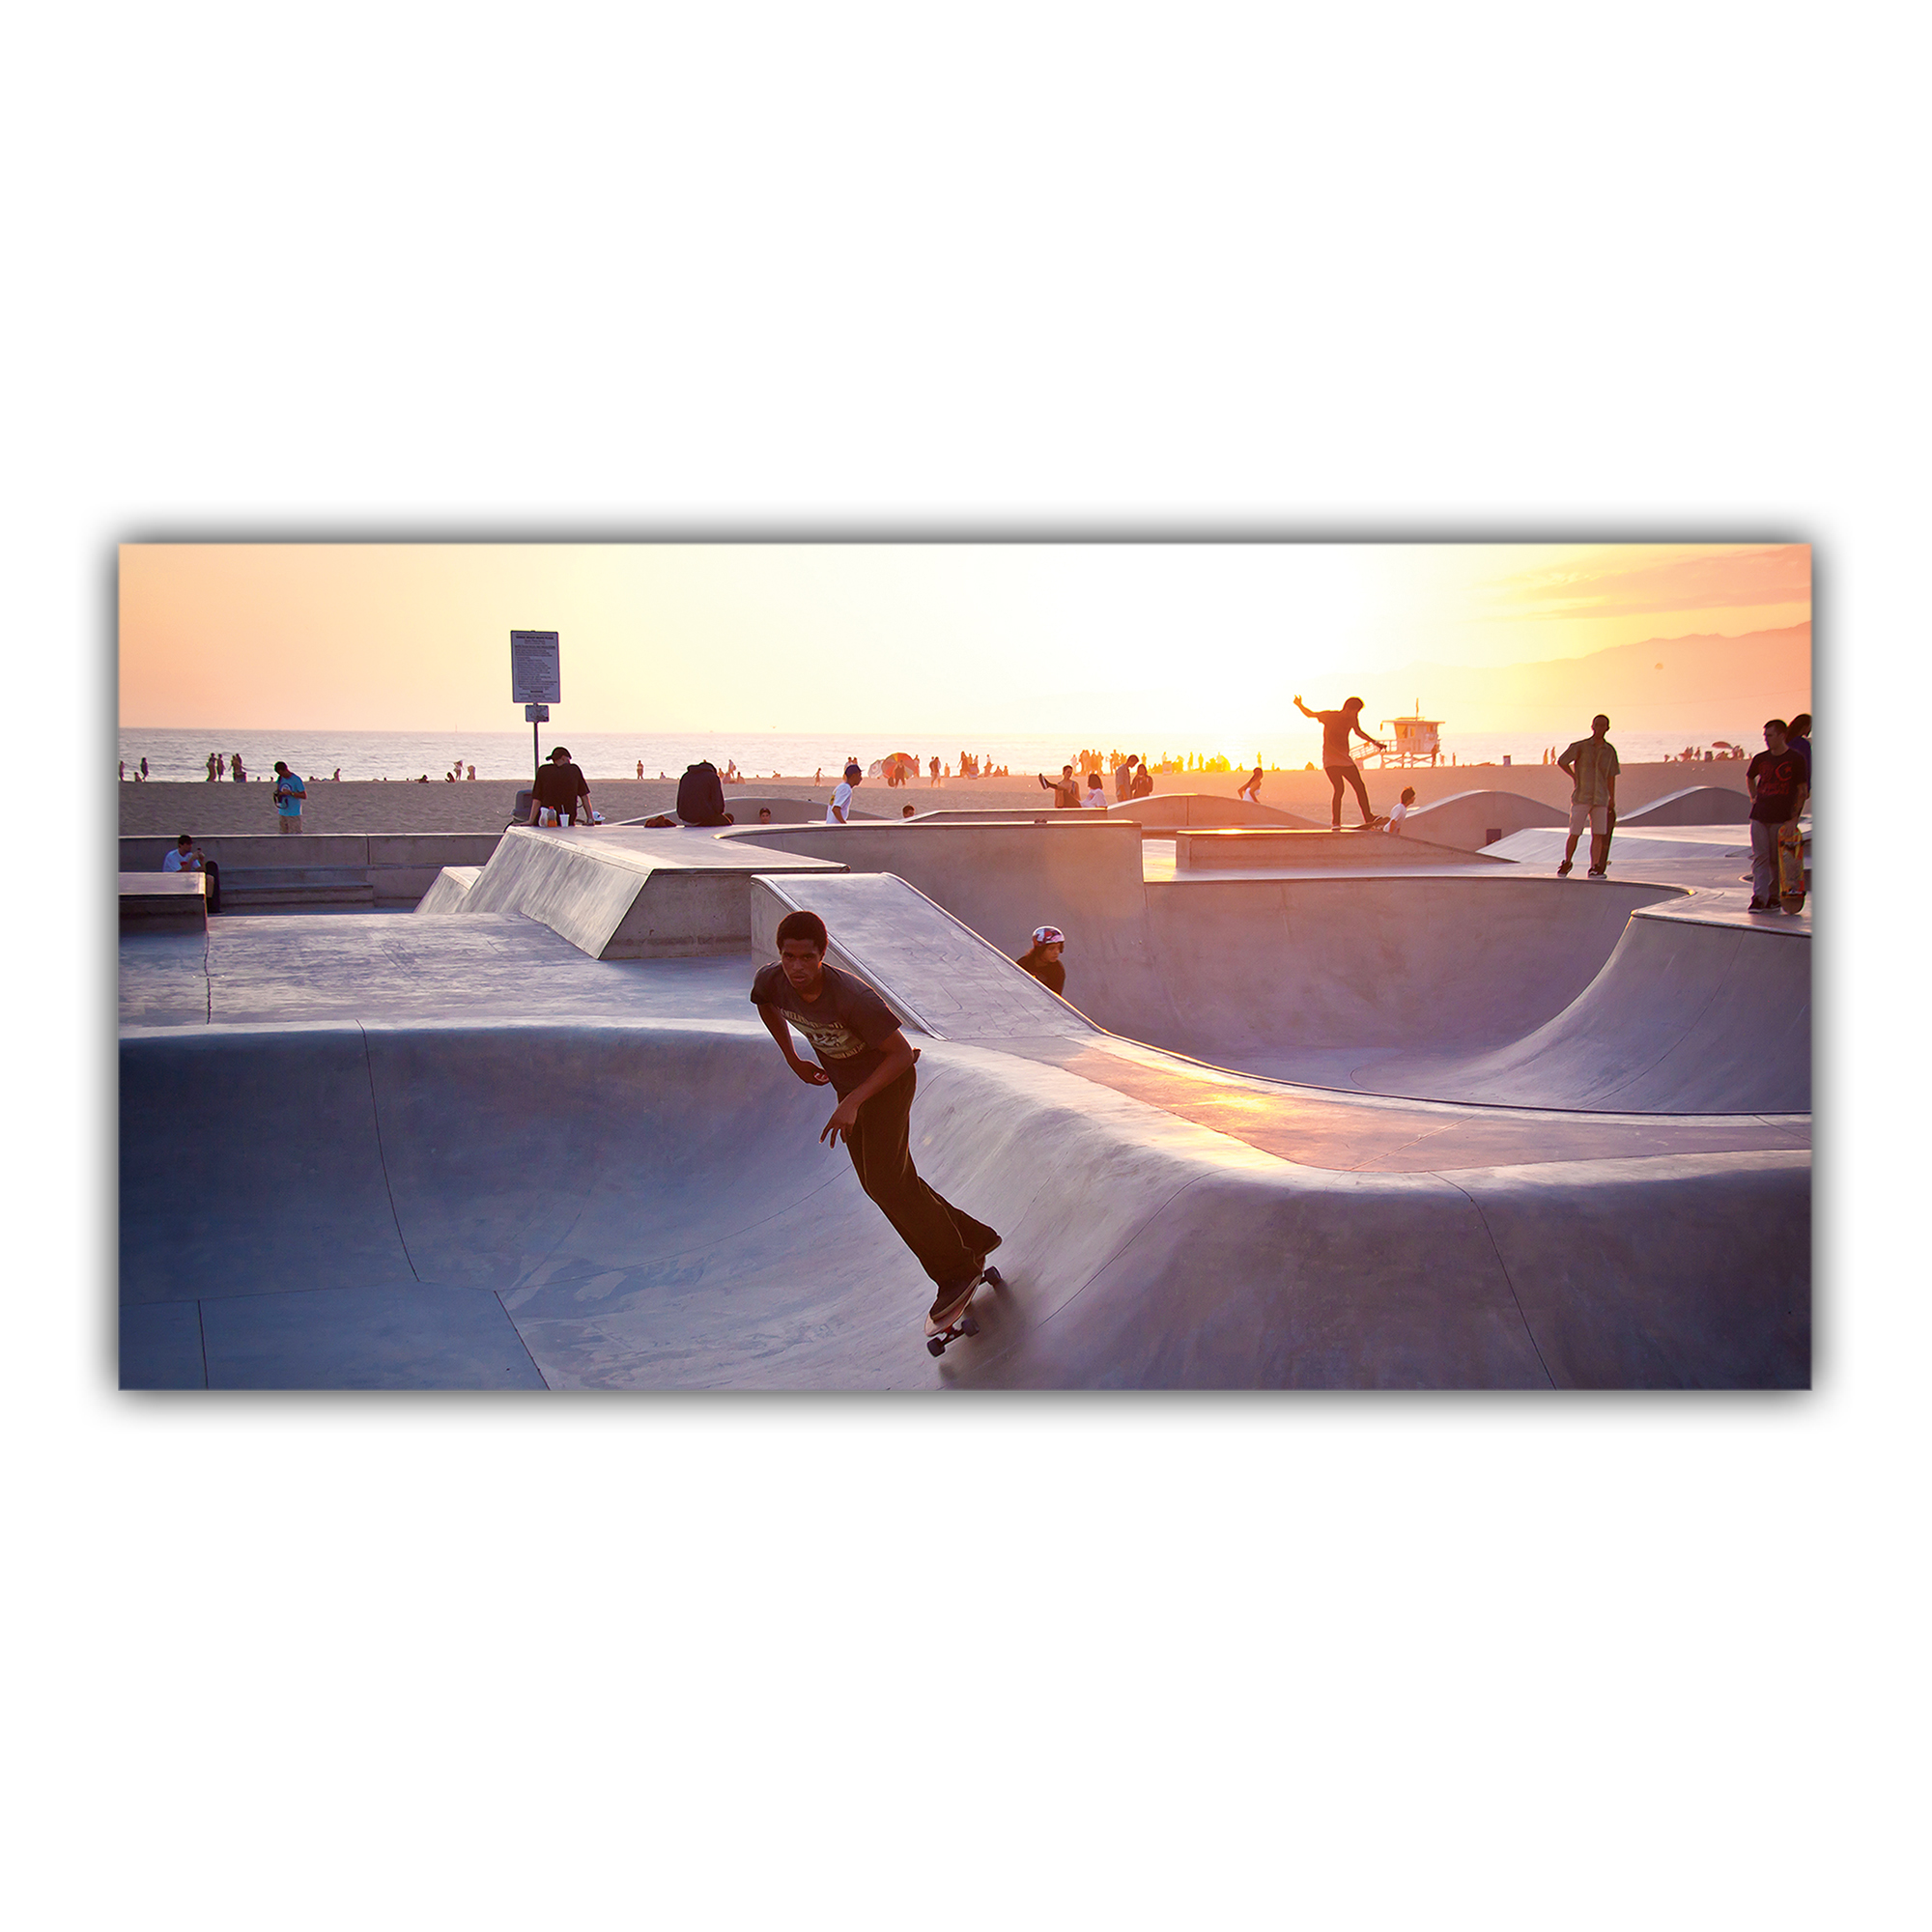 Skate Parc Venice Beach Los Angeles Californie USA